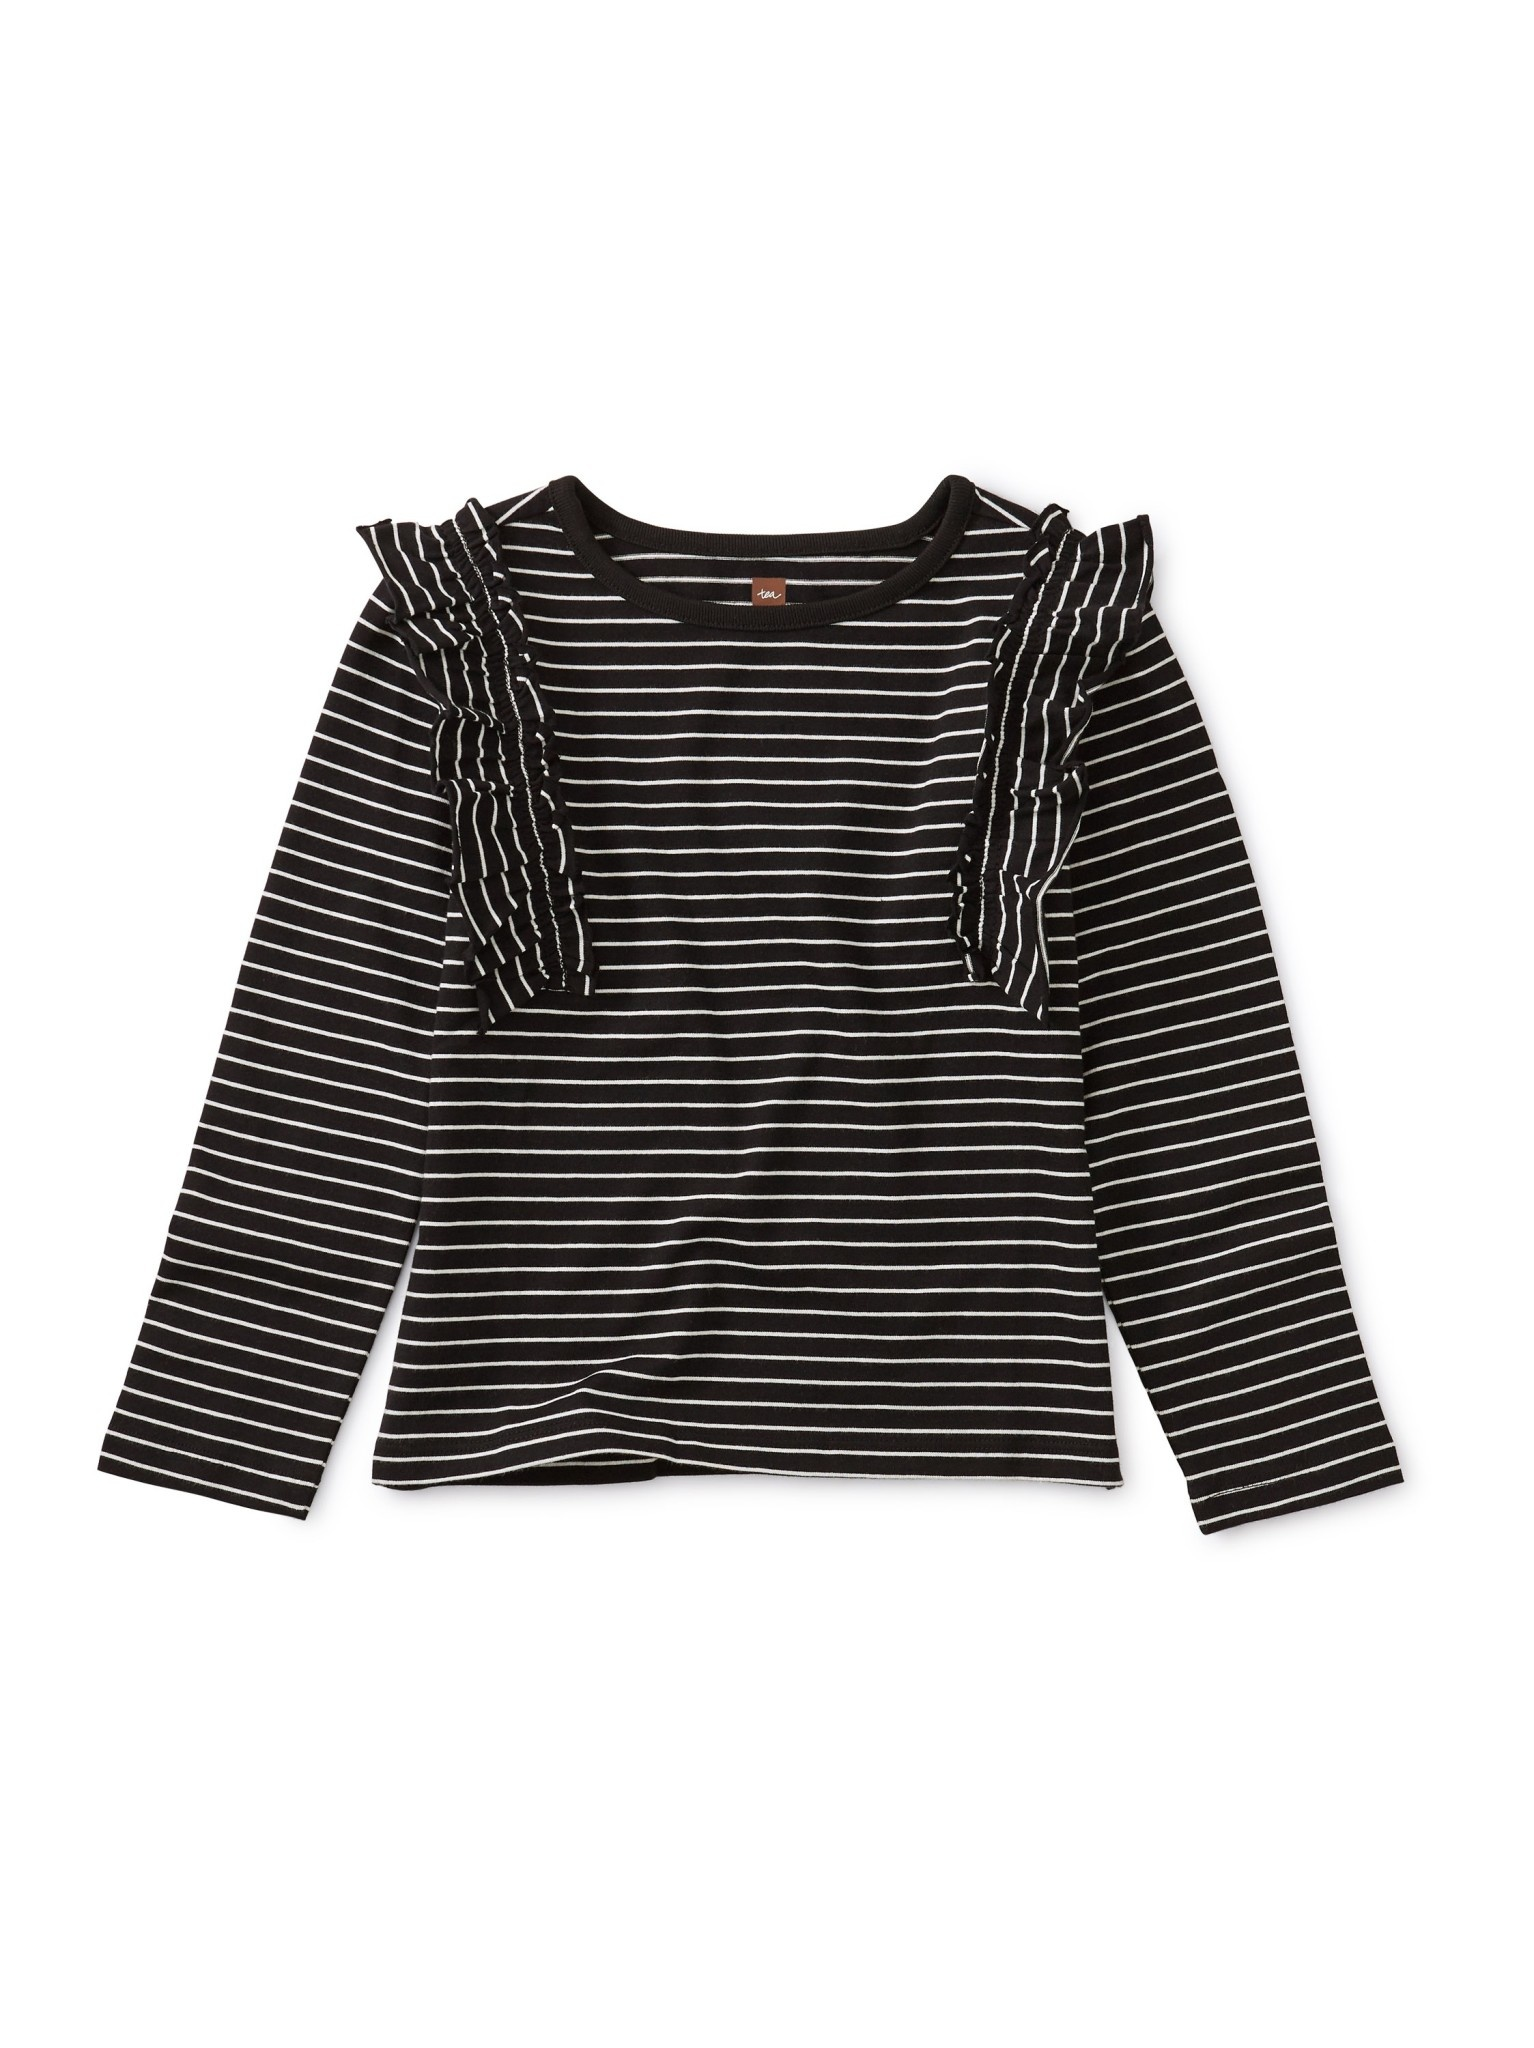 Tea Collection Striped Ruffle Flutter Top